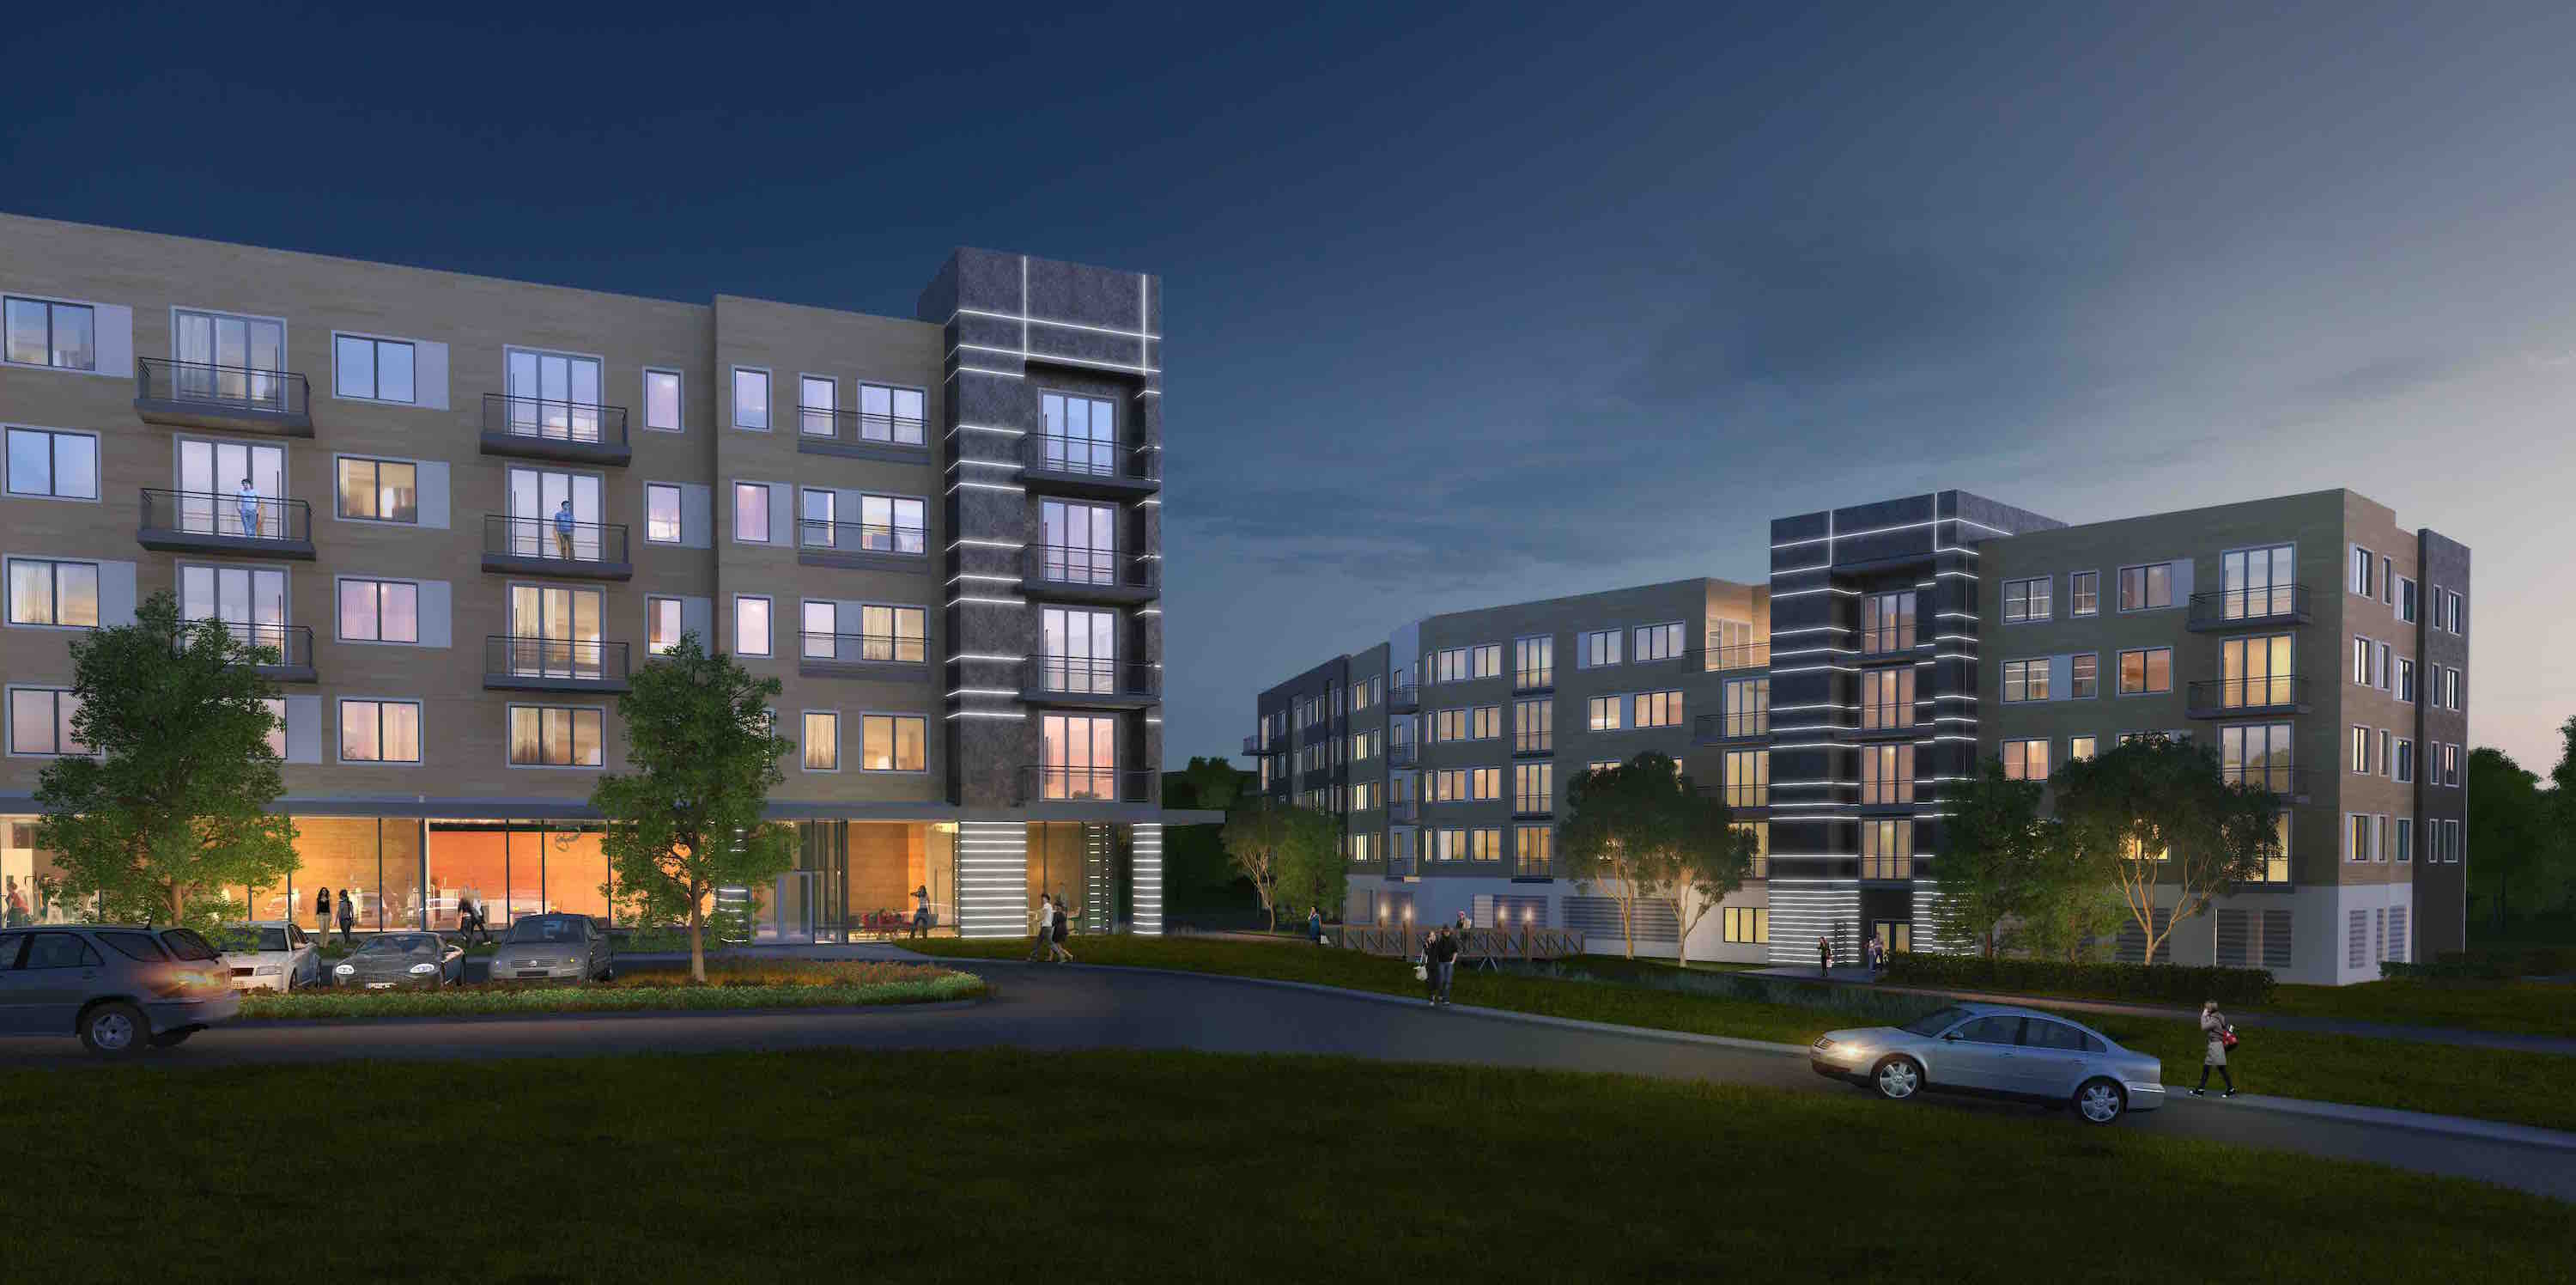 Emery flats 200 presidential way woburn ma apartments residences new construction for rent lease national development